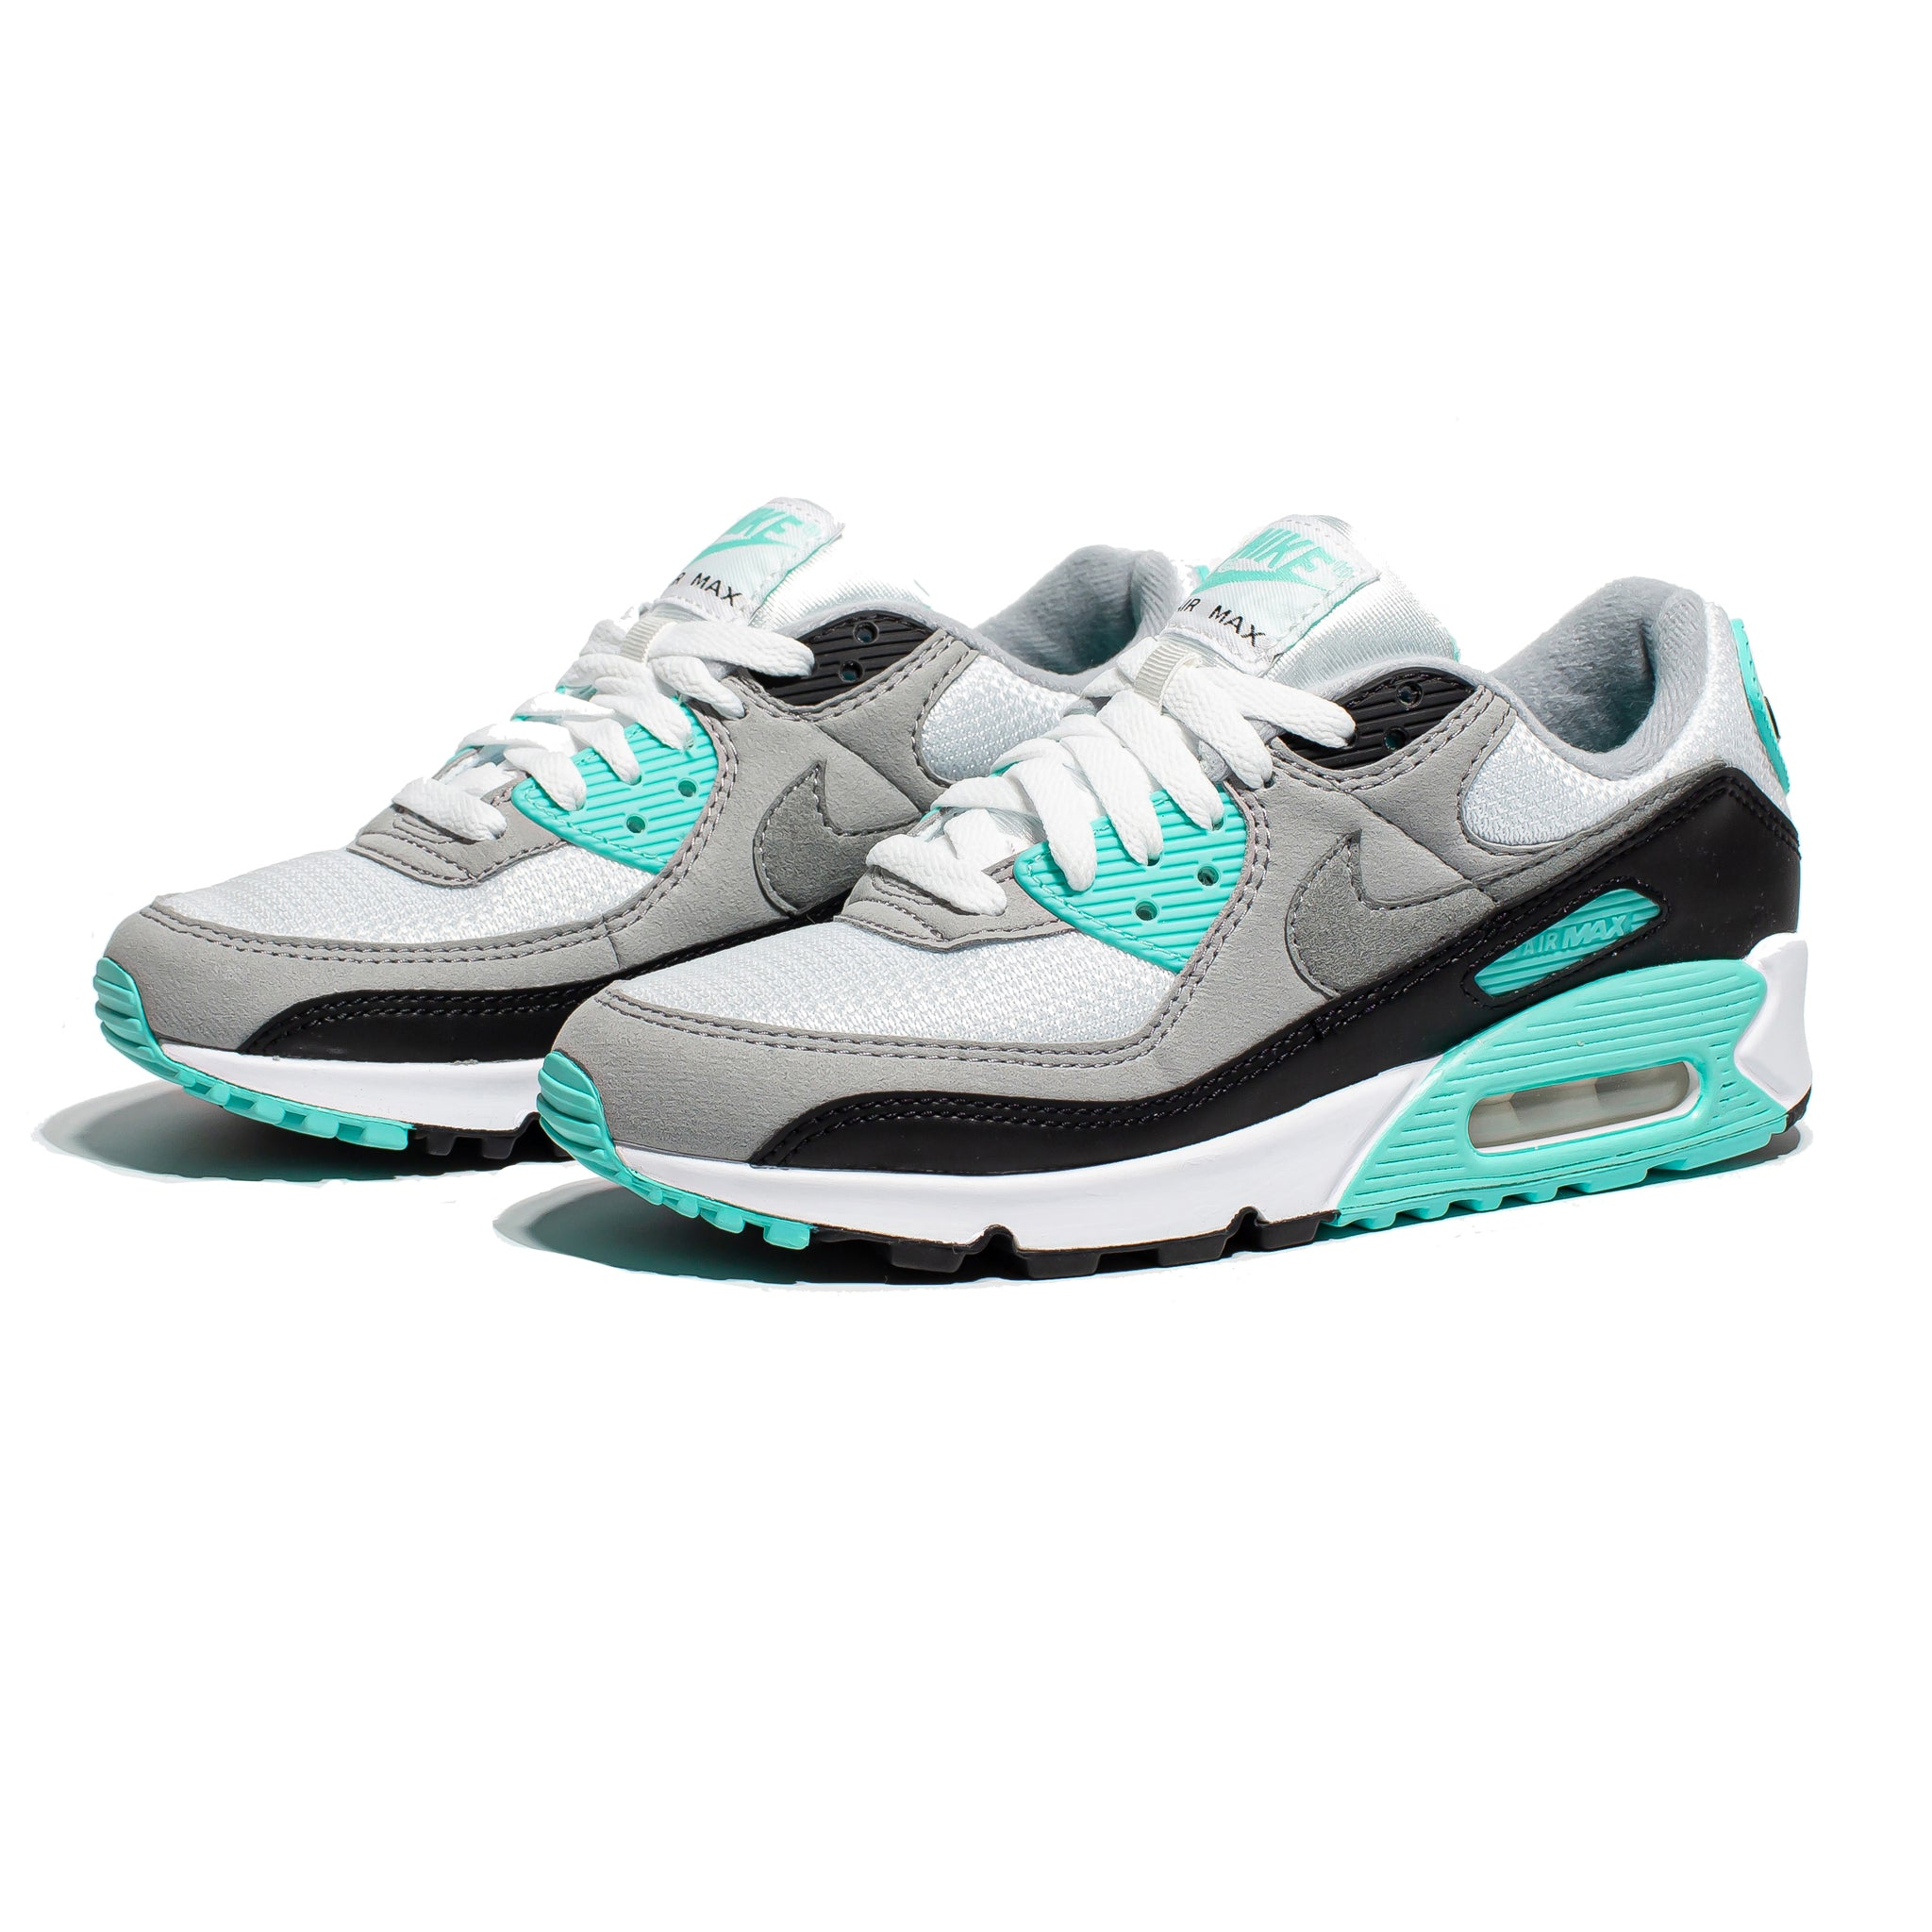 Nike Air Max 90 'Hyper Turquoise'